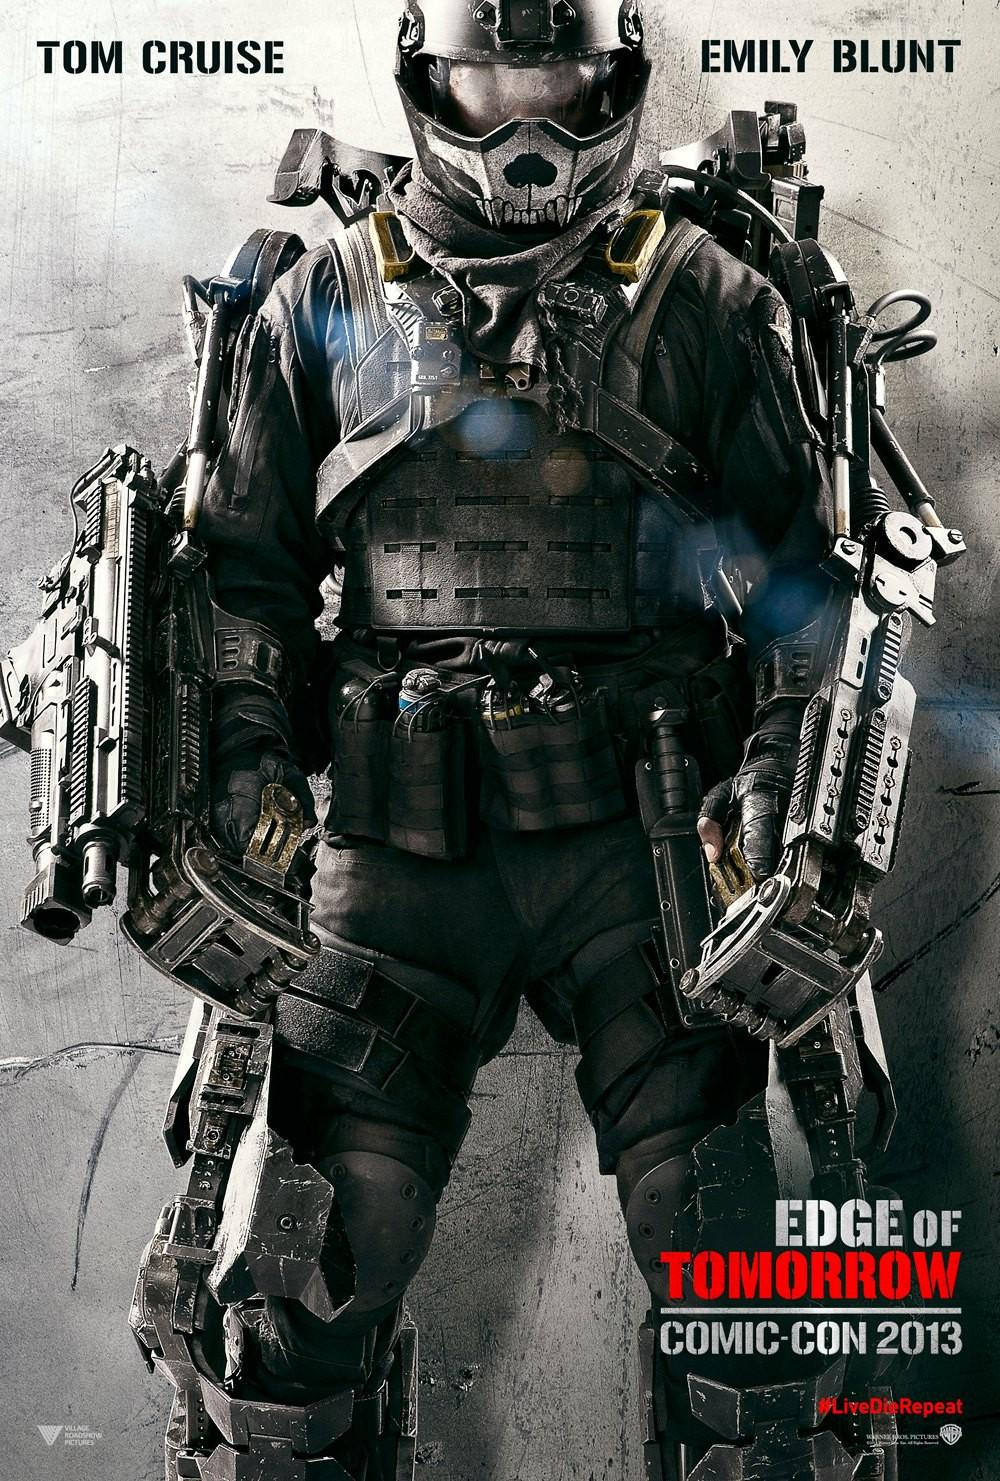 Edge of Tomorrow - Senza Domani - film poster - esoscheletro